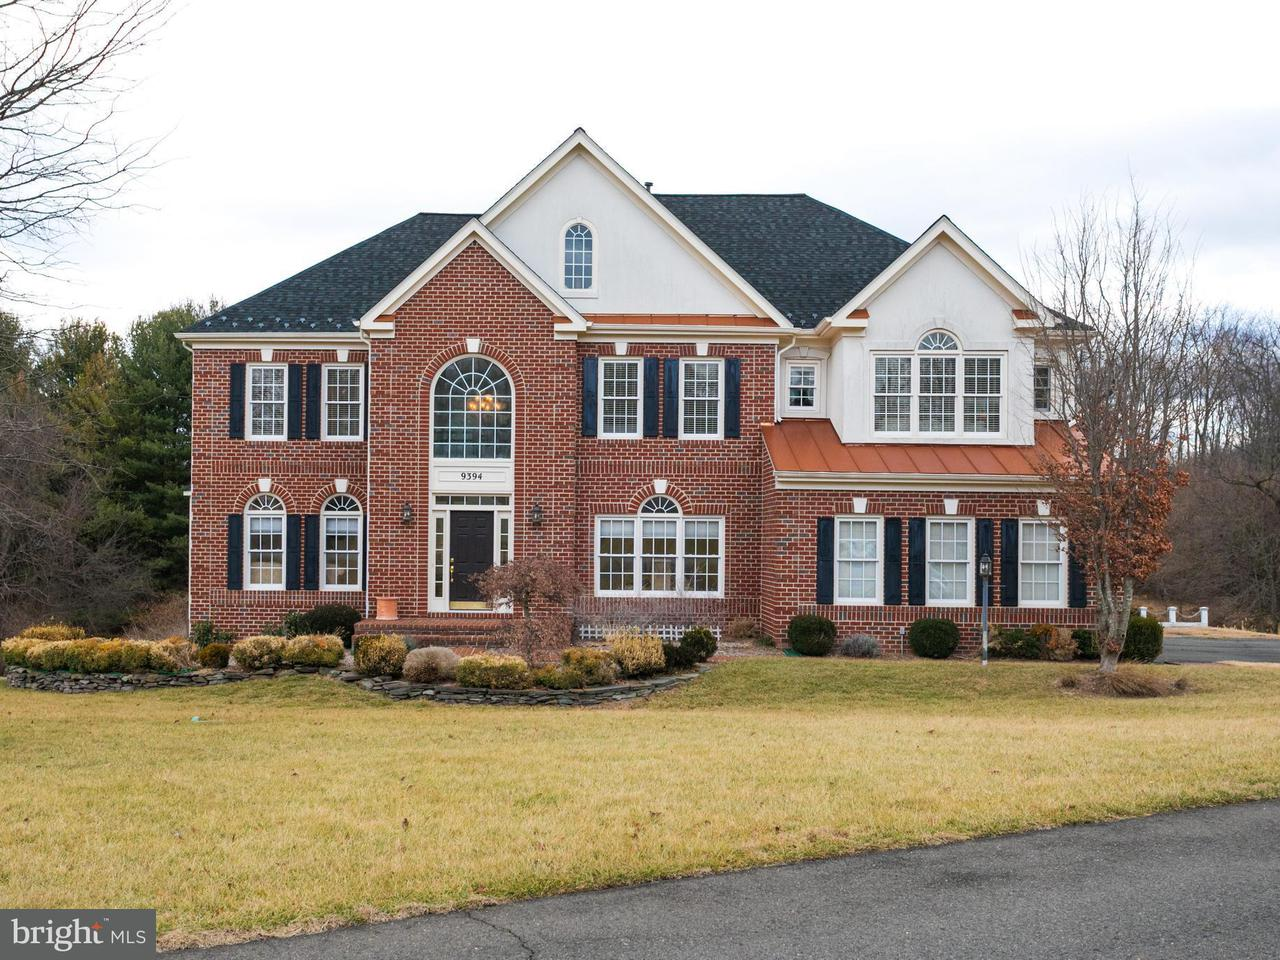 Single Family Home for Sale at 9394 Farmingdale Court 9394 Farmingdale Court Great Falls, Virginia 22066 United States